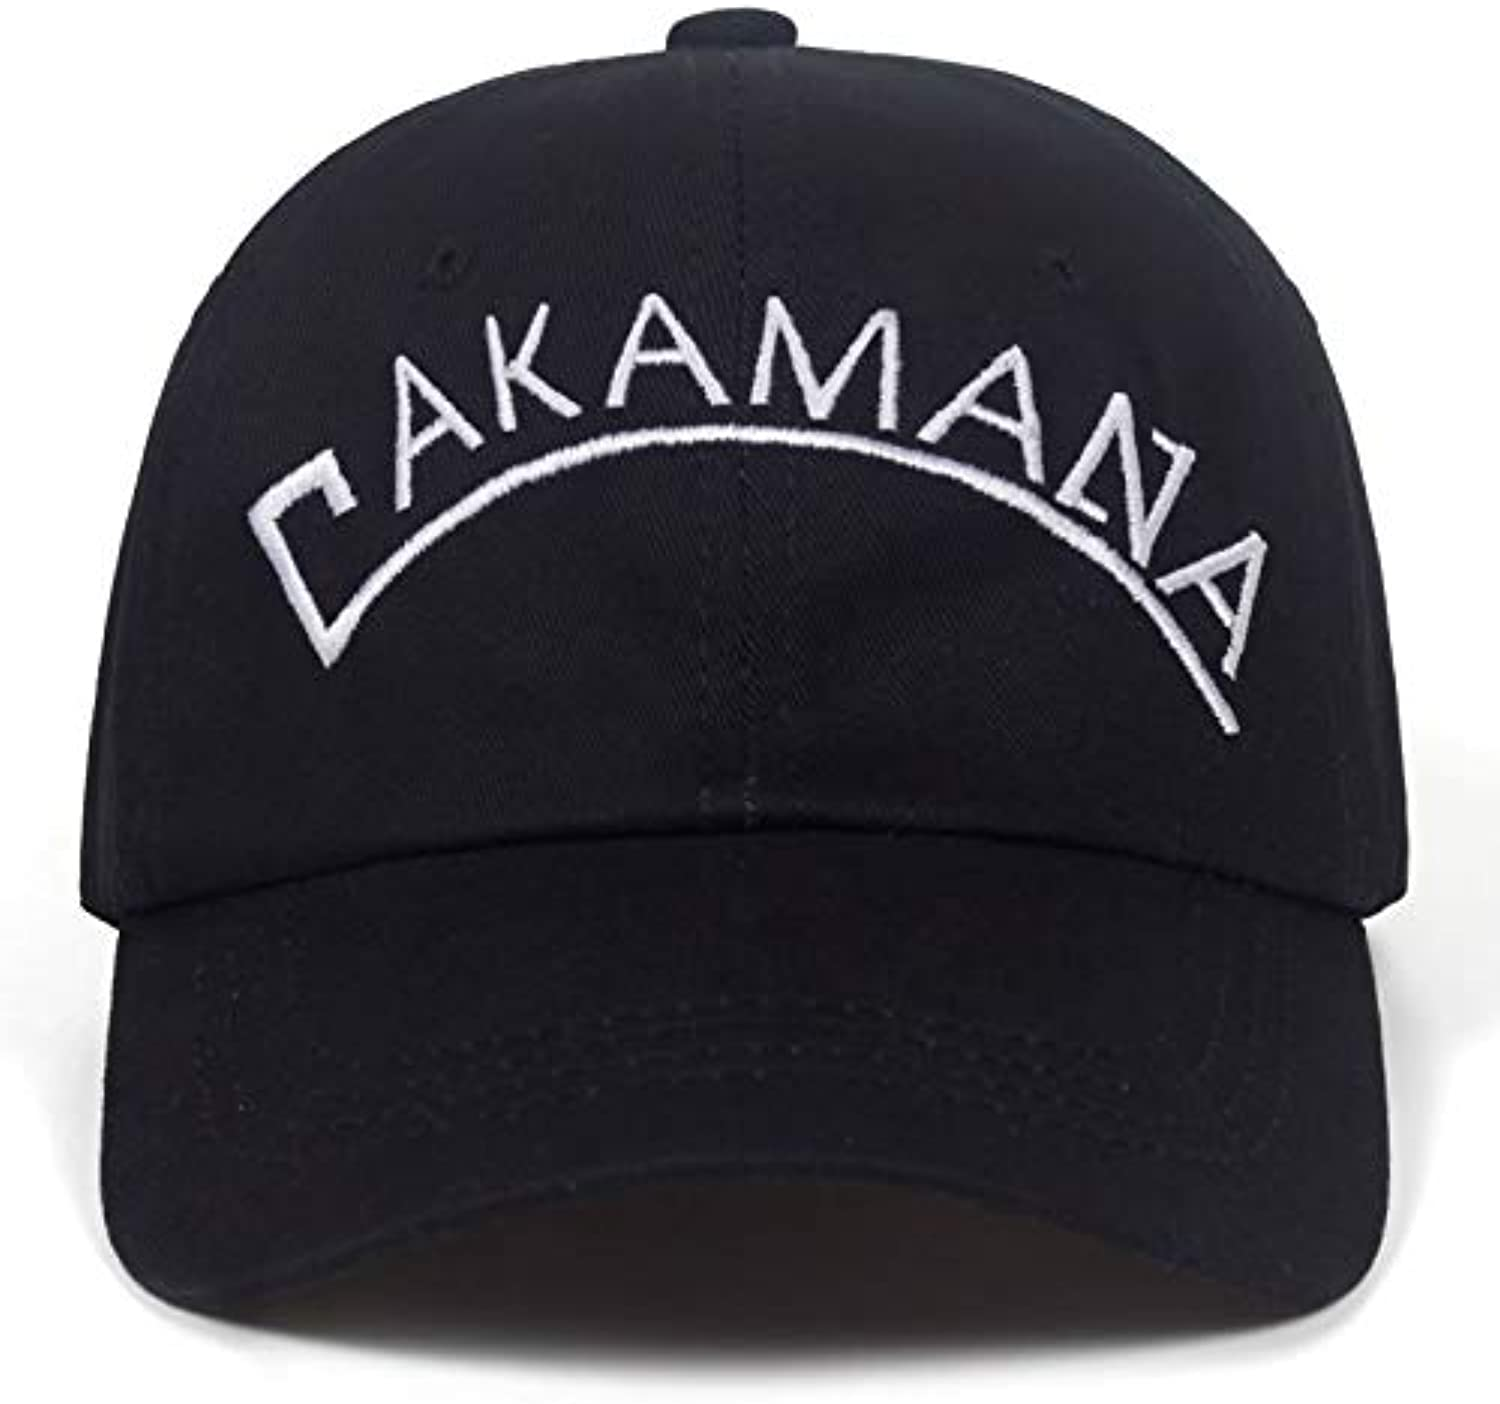 AAMOUSE New Letter Embroidery Baseball Cap Cotton Men Women Hats Hip hop Outdoor dad for Sun